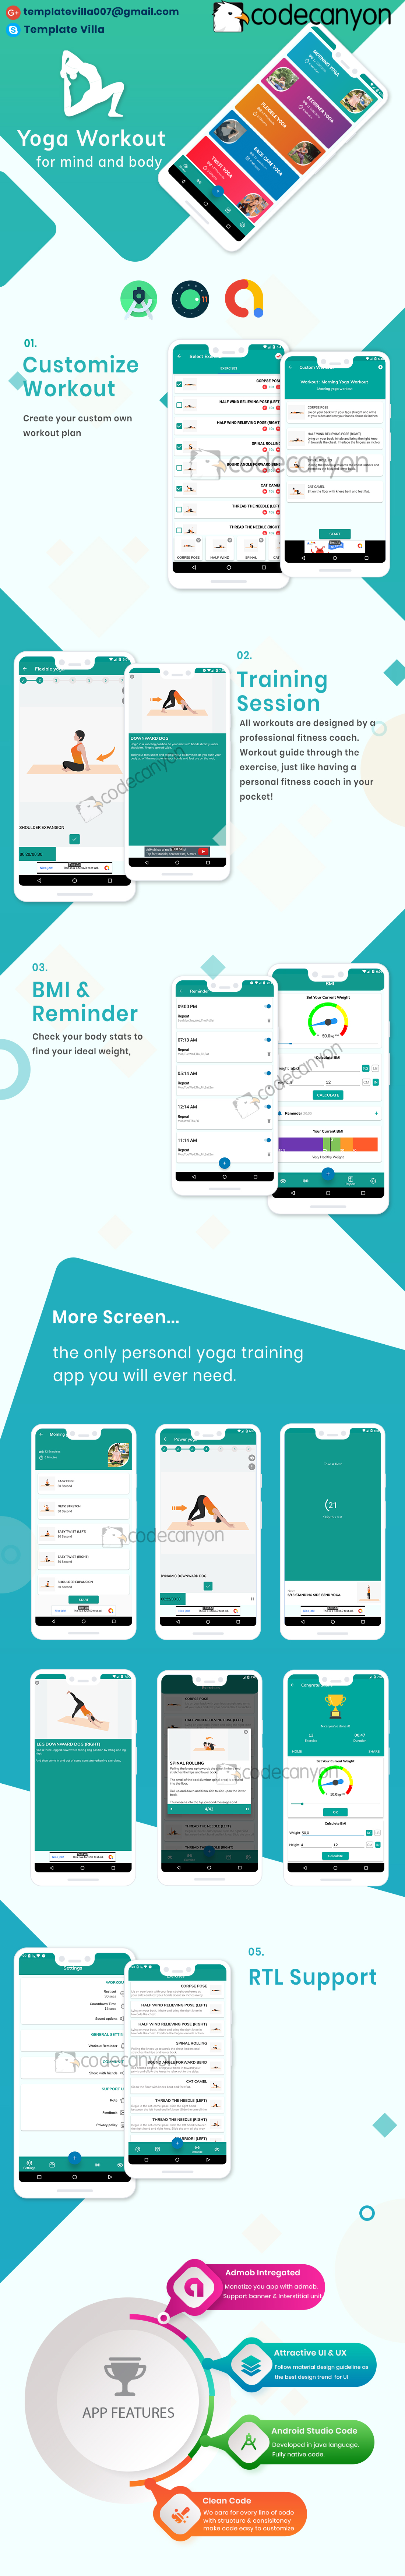 Yoga Workout with admob ready to publish Template - 7